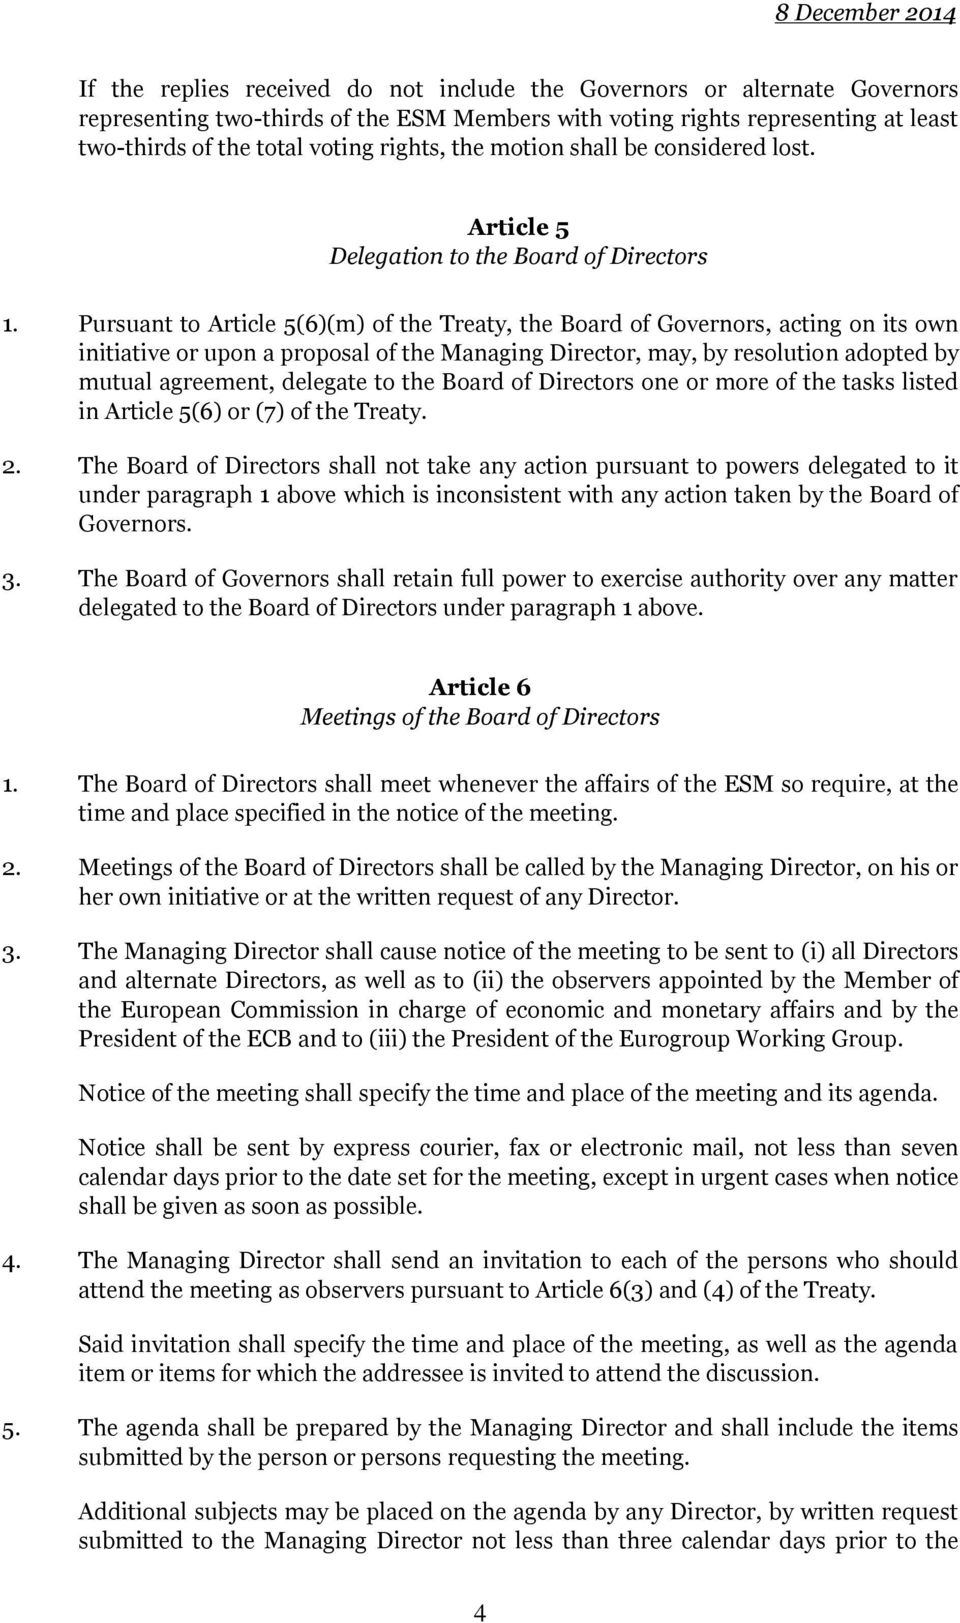 Pursuant to Article 5(6)(m) of the Treaty, the Board of Governors, acting on its own initiative or upon a proposal of the Managing Director, may, by resolution adopted by mutual agreement, delegate